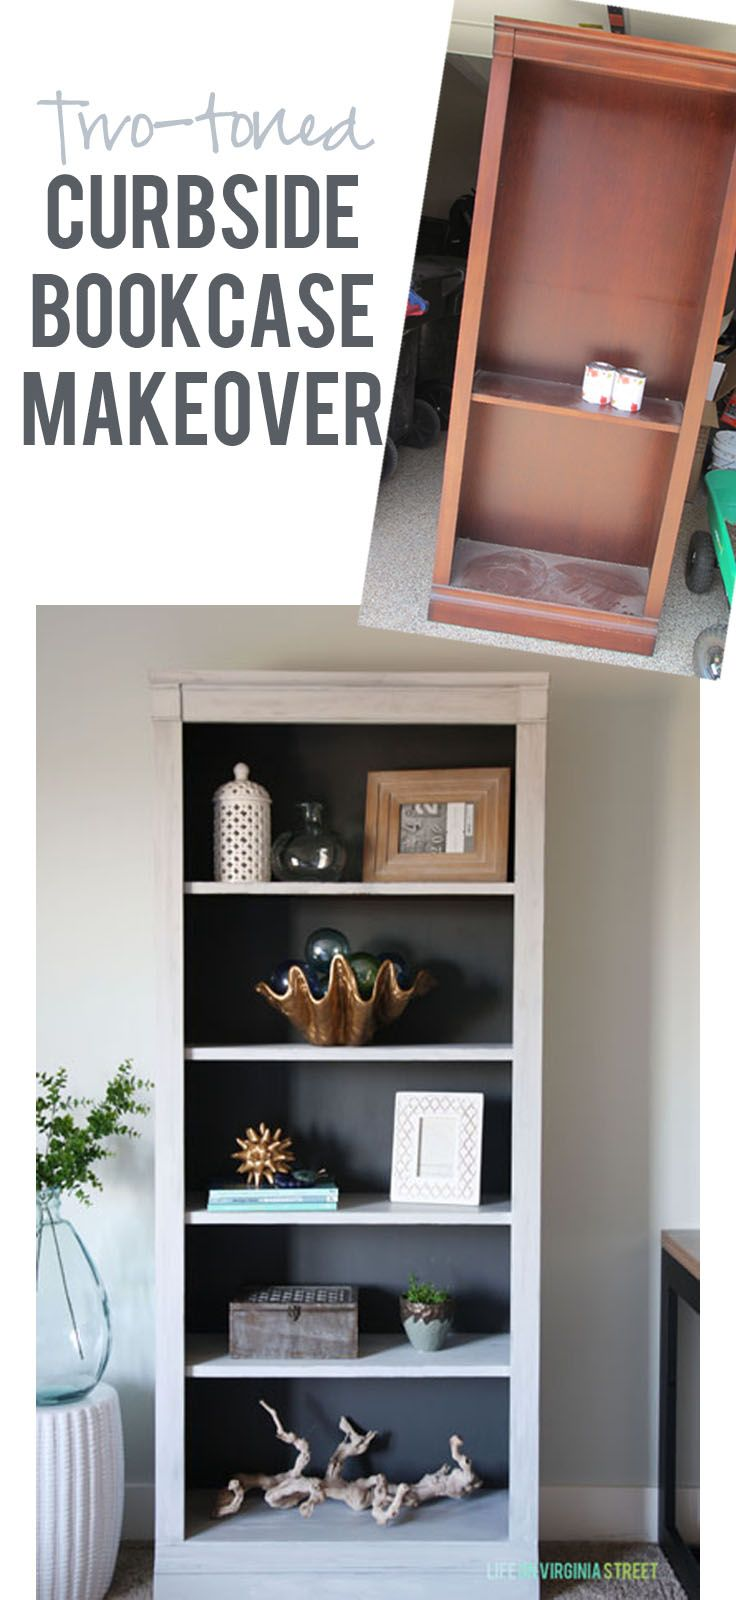 Two-toned Curbside Bookcase Makeover - easy update with chalk based paint!